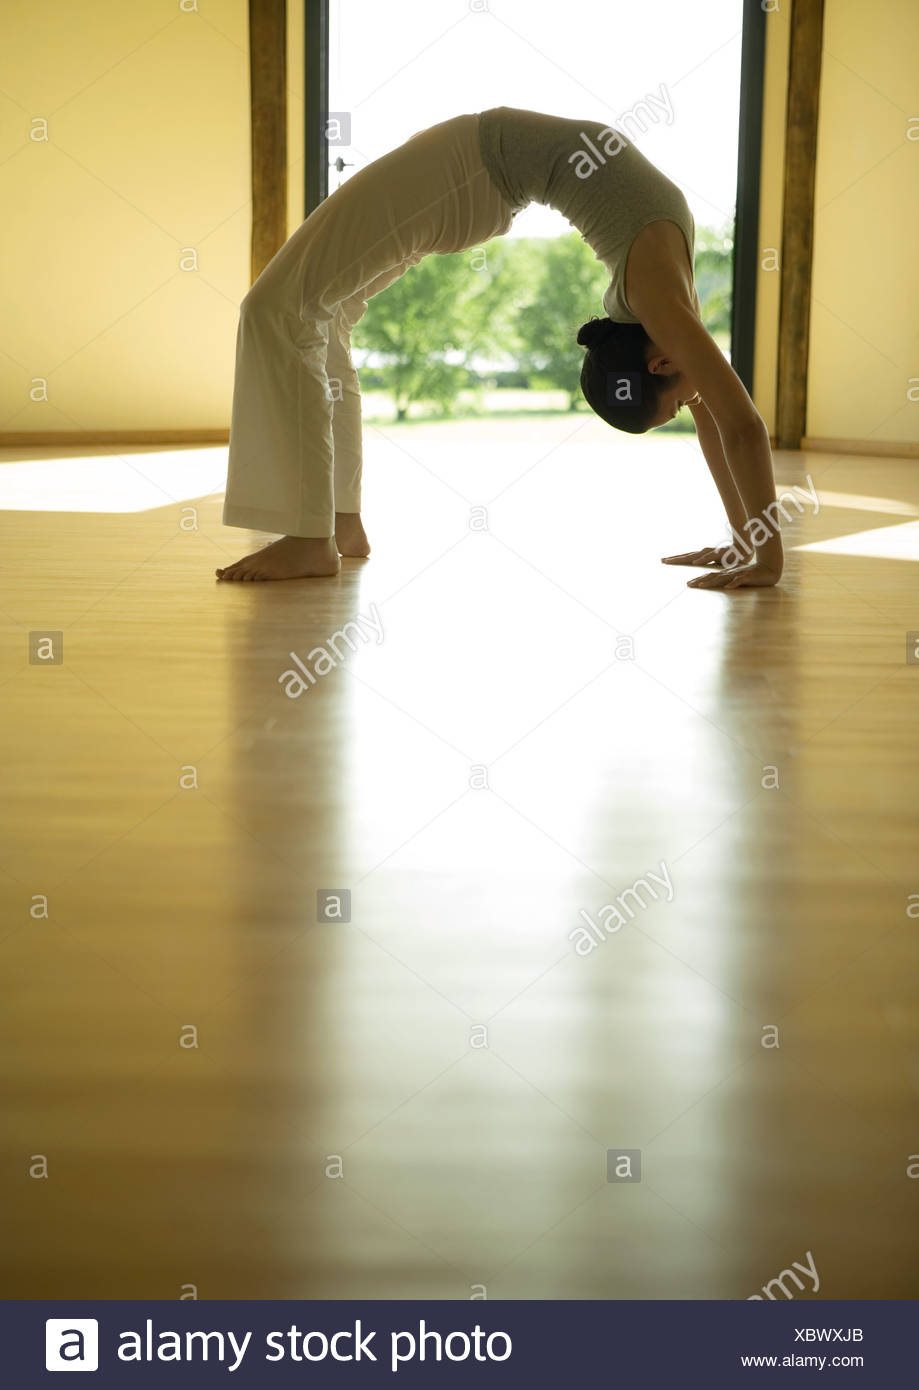 Woman doing bridge position, side view Stock Photo